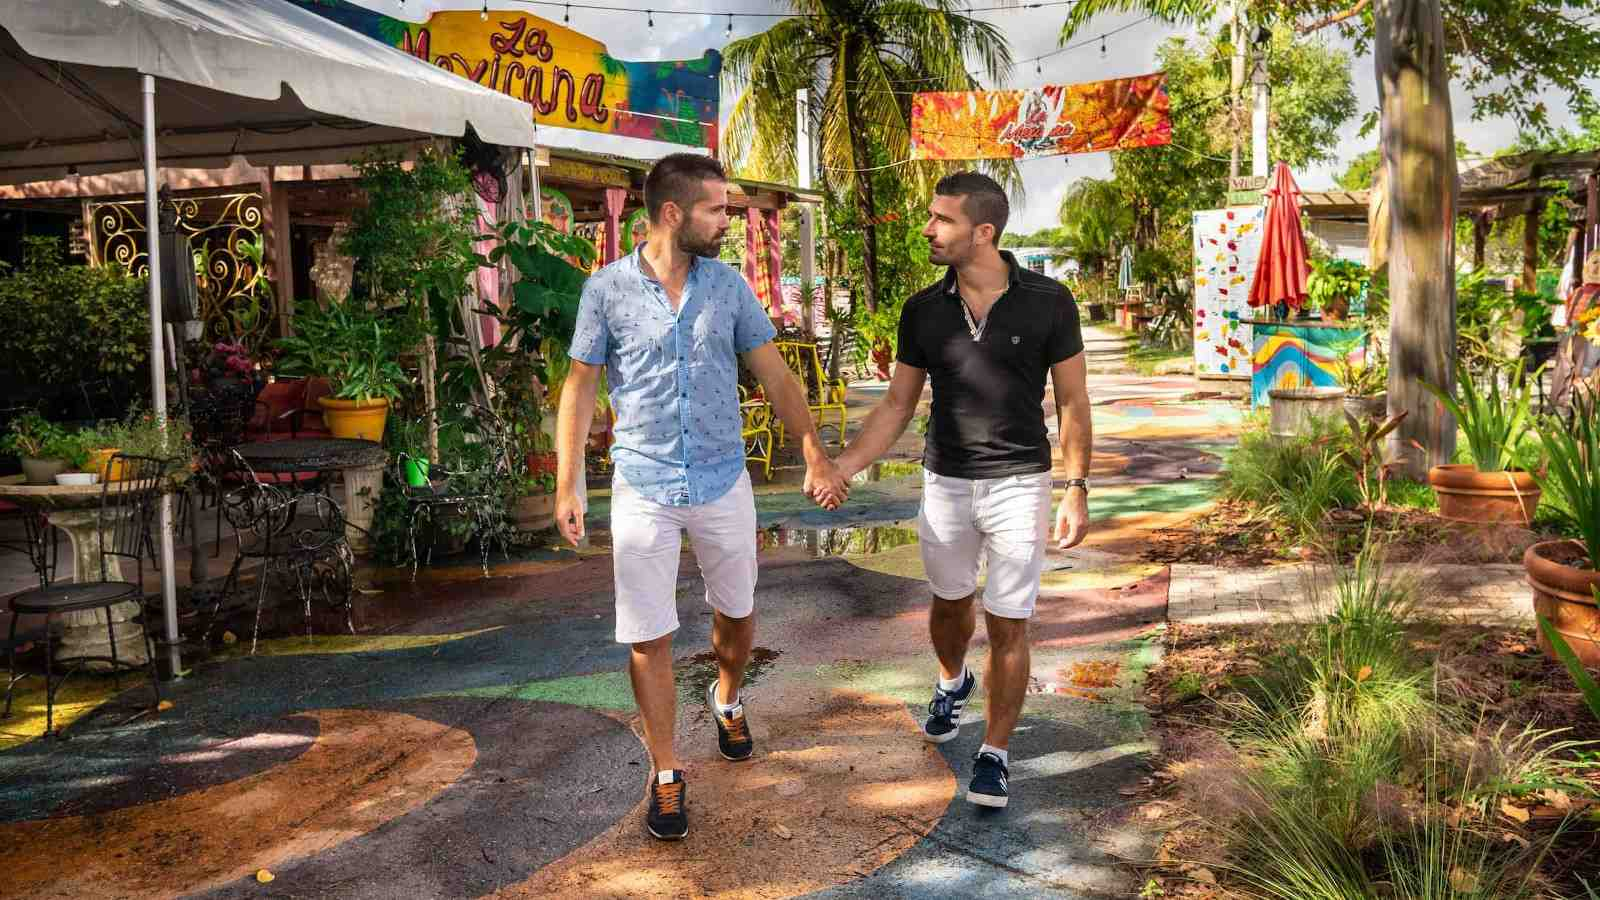 Make sure you visit the Bohemian block of cafes and colourful gay friendly hangouts along Eucalyptus Gardens while you're in Fort Lauderdale